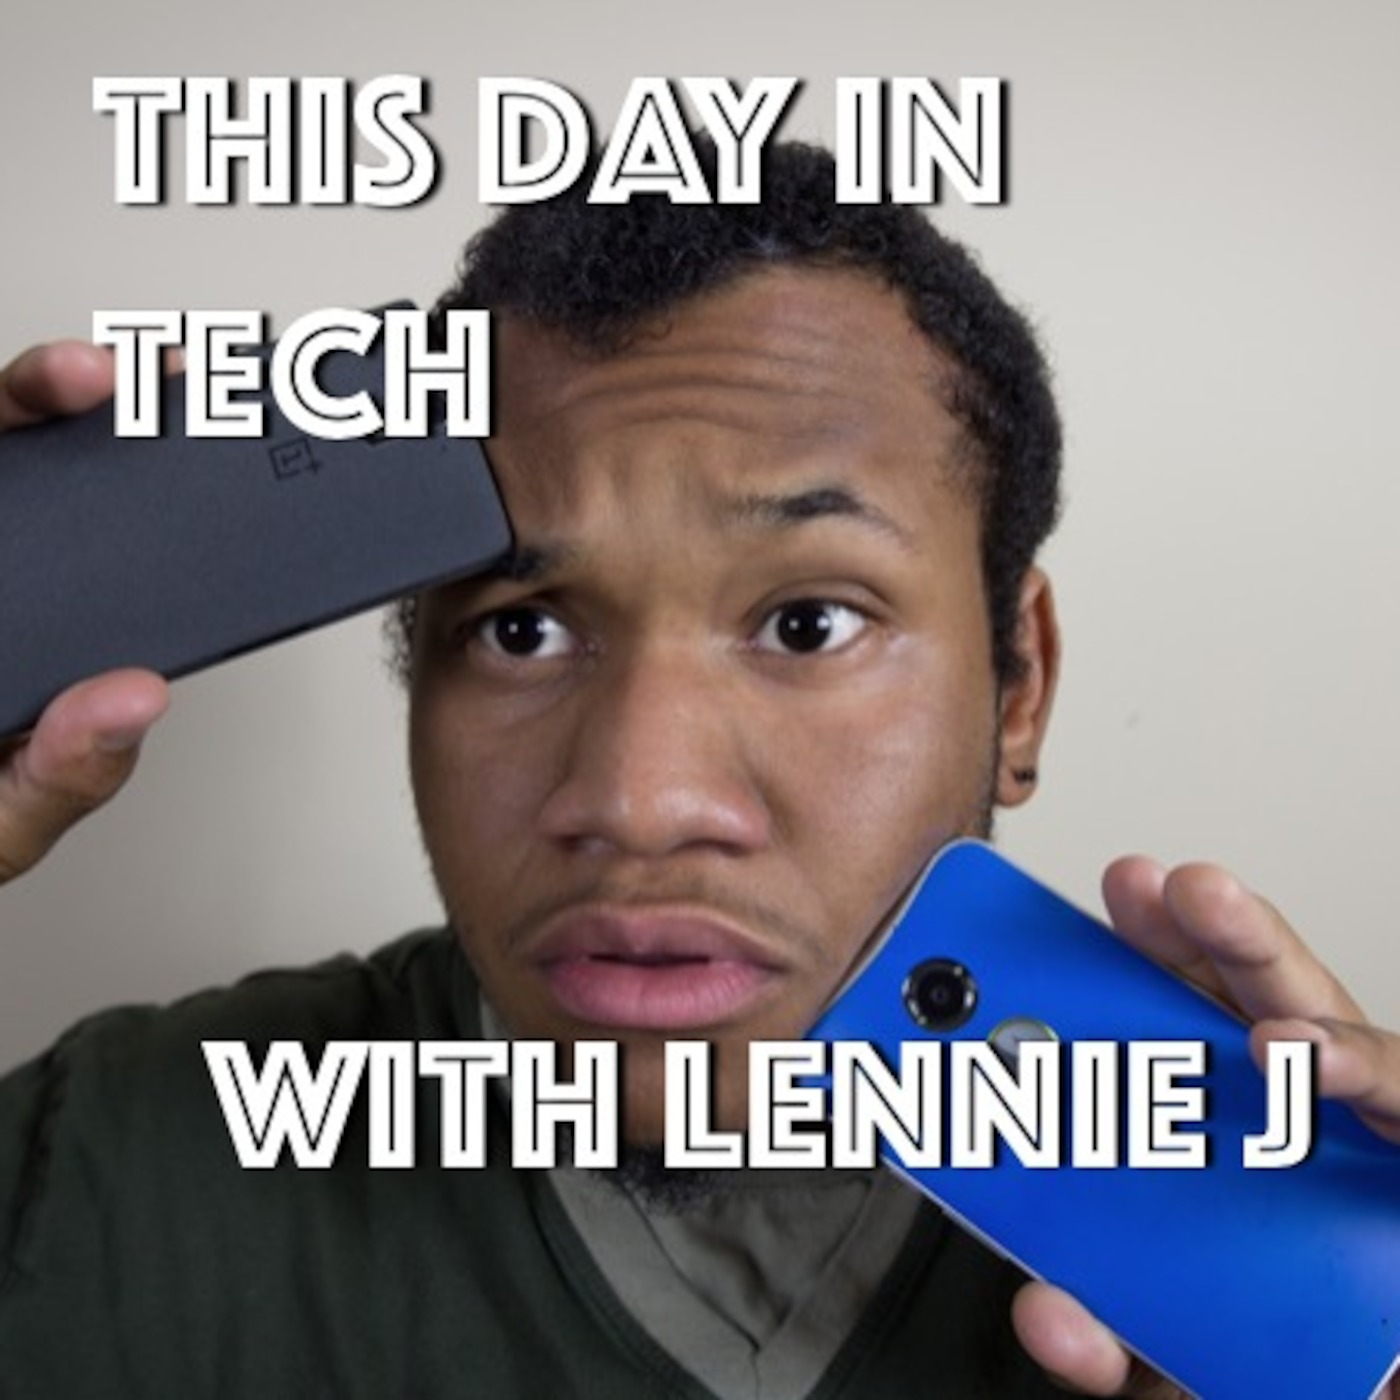 This Day in Tech With Lennie J